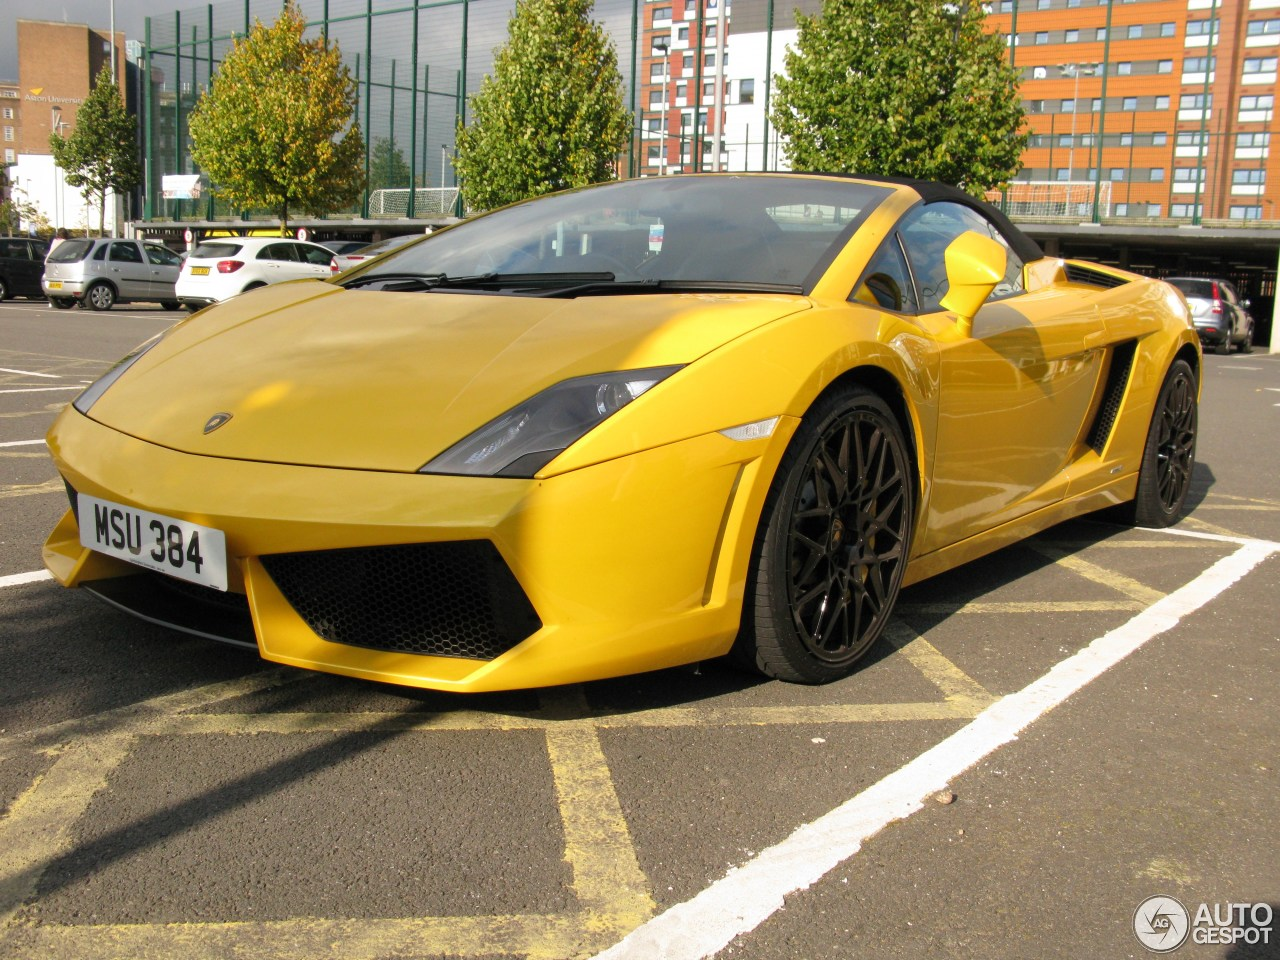 lamborghini urus update with 08 on Photo 01 in addition  likewise Range Rover Velar Debuts In New York As Land Rover Enlist Ellie Goulding For Added Glitz furthermore Lamborghini Diablo GT model 1620 additionally 2018 Lamborghini Urus Price 2.